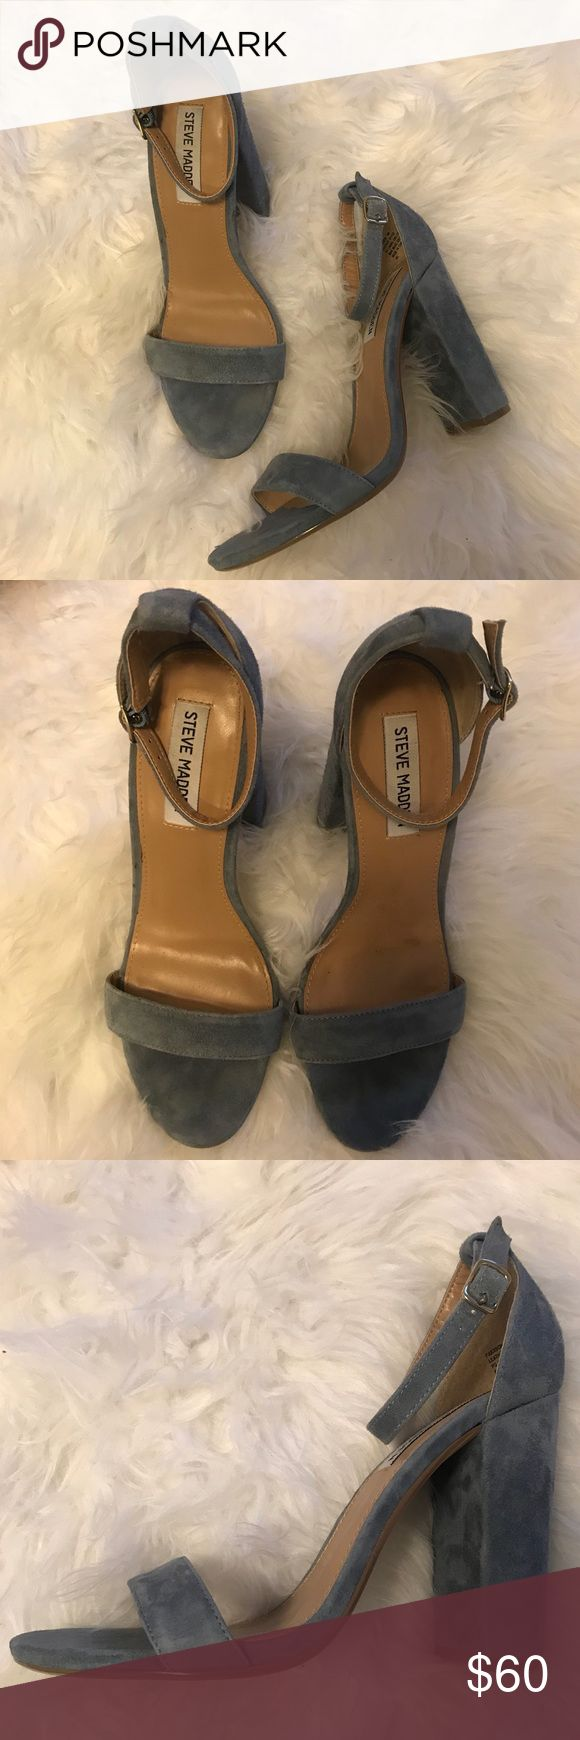 """Steve Madden Carson heels 4"""" heel  Ankle strap sandal on a chunky heel perfect for going out or a summer date!  ONLY WORN ONCE Steve Madden Shoes Heels"""